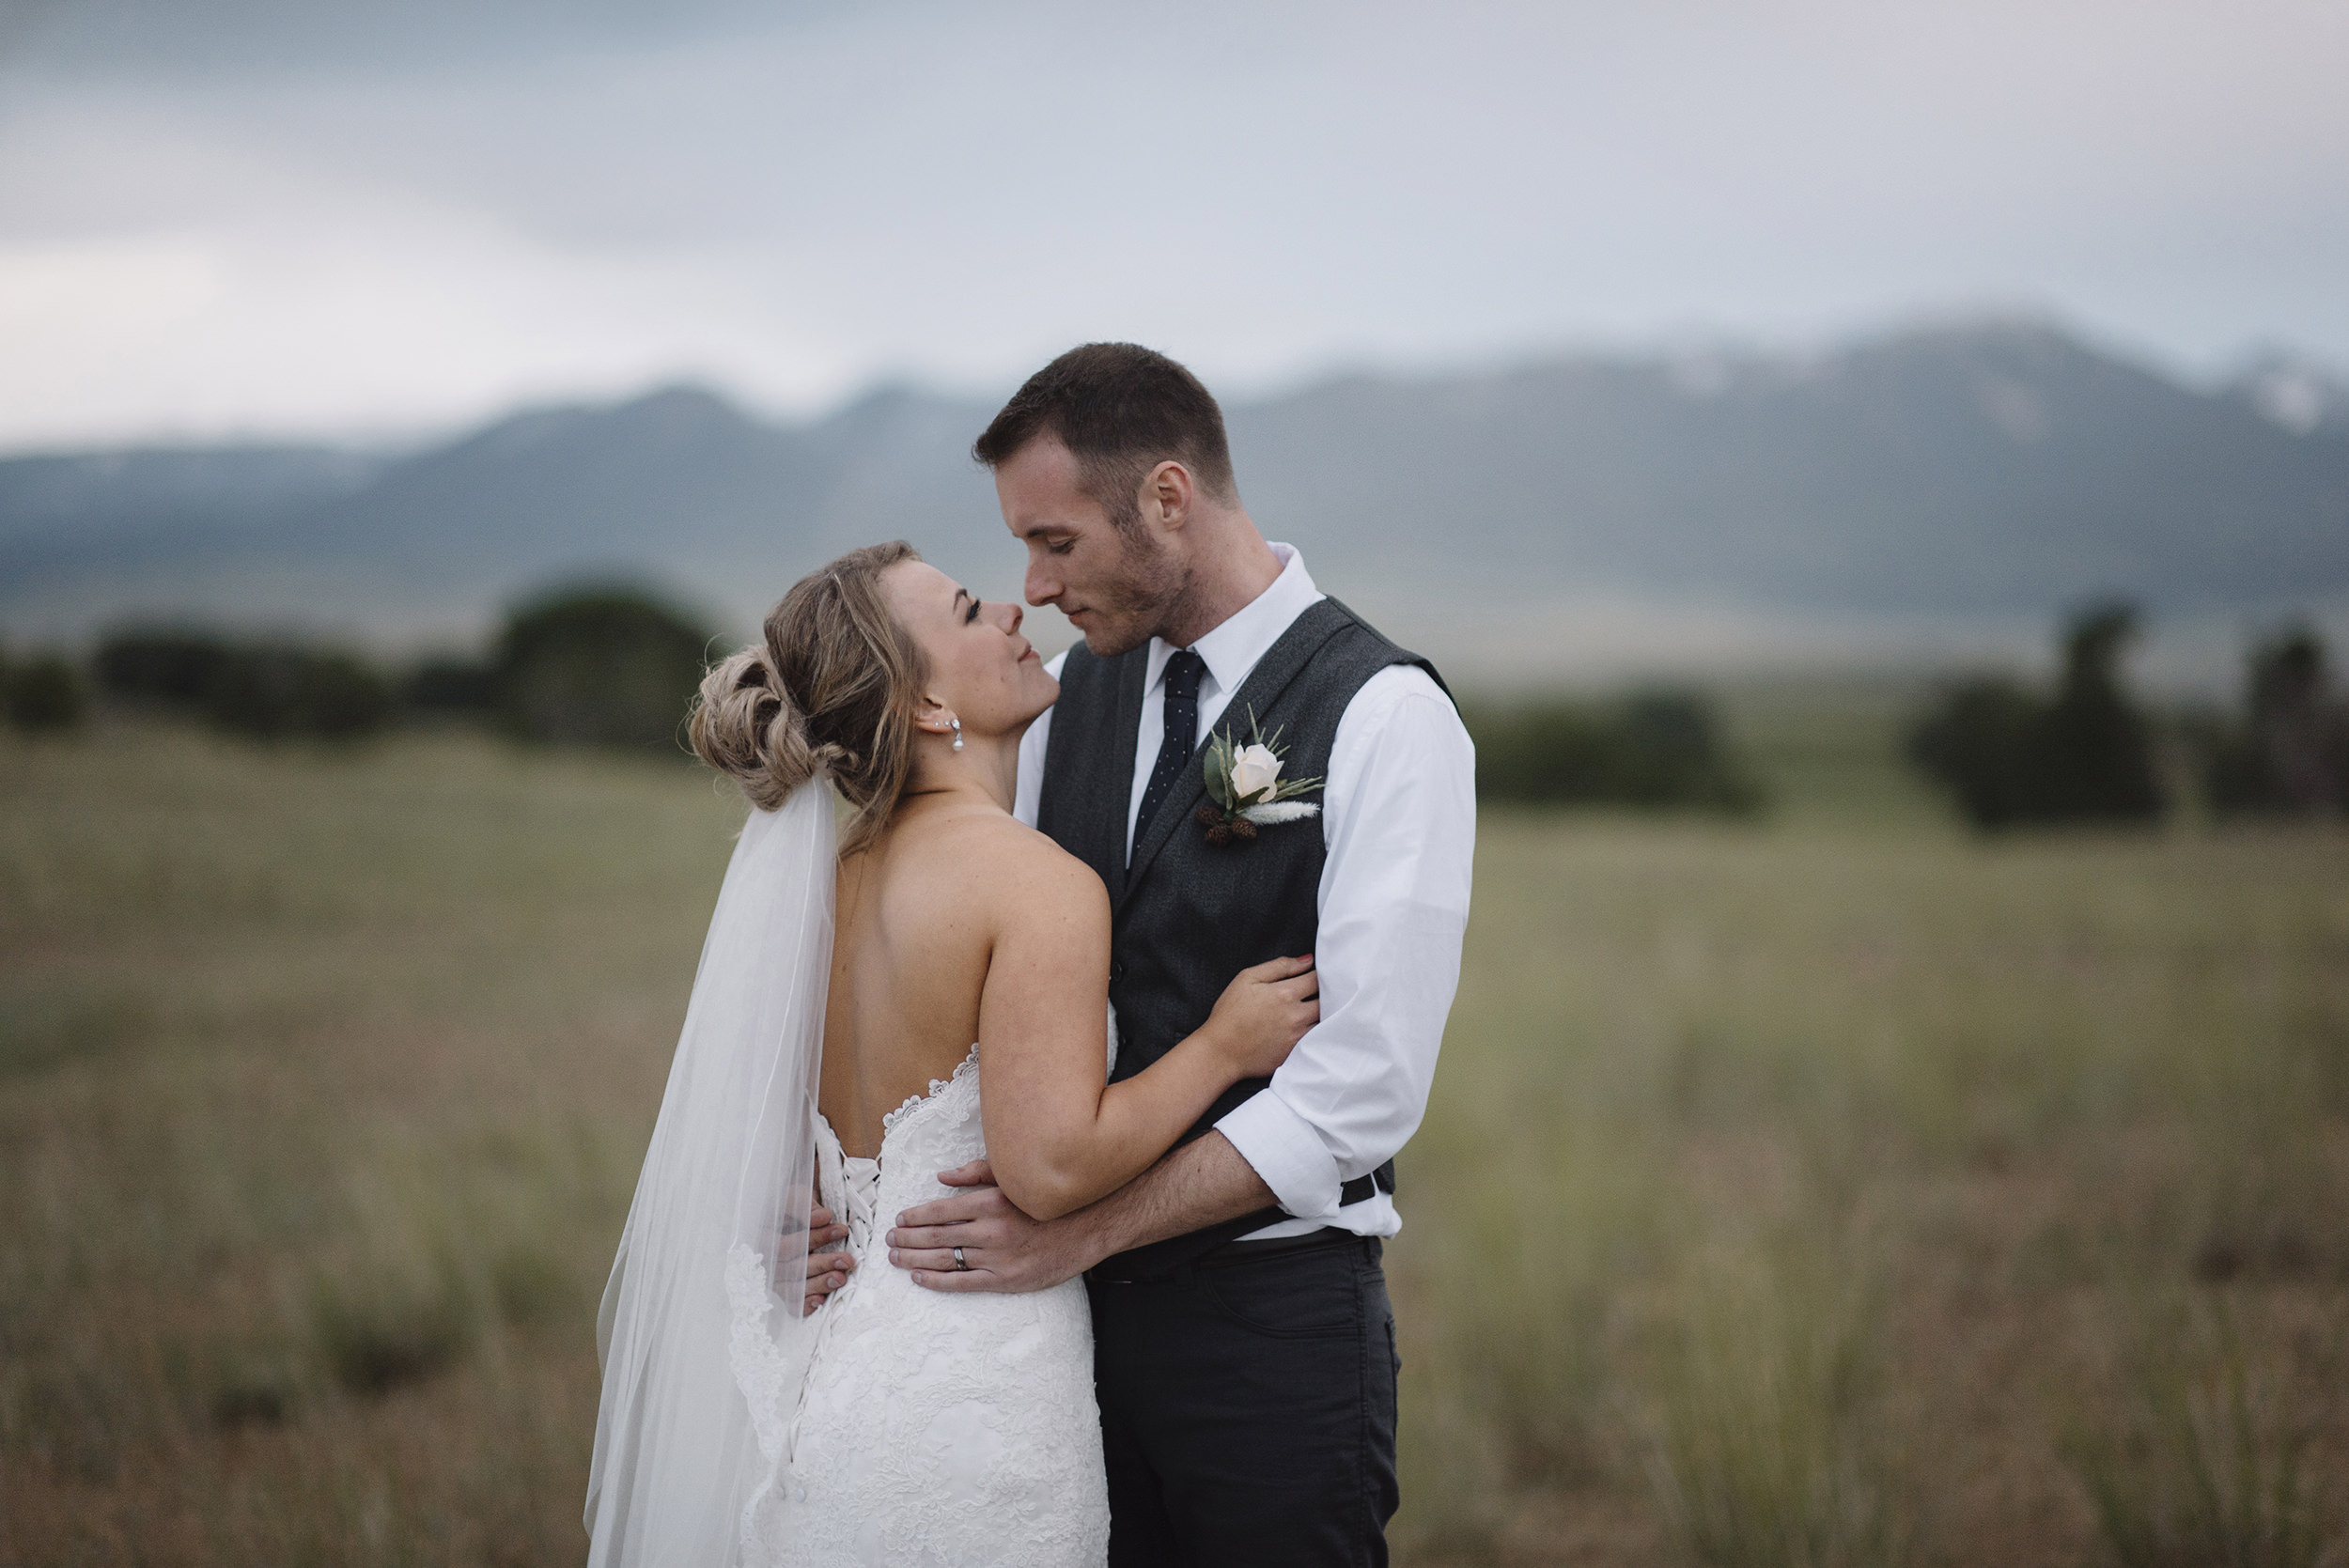 Colby-and-Jess-Intimate-Backyard-Wedding-Bozeman-Montana311.jpg